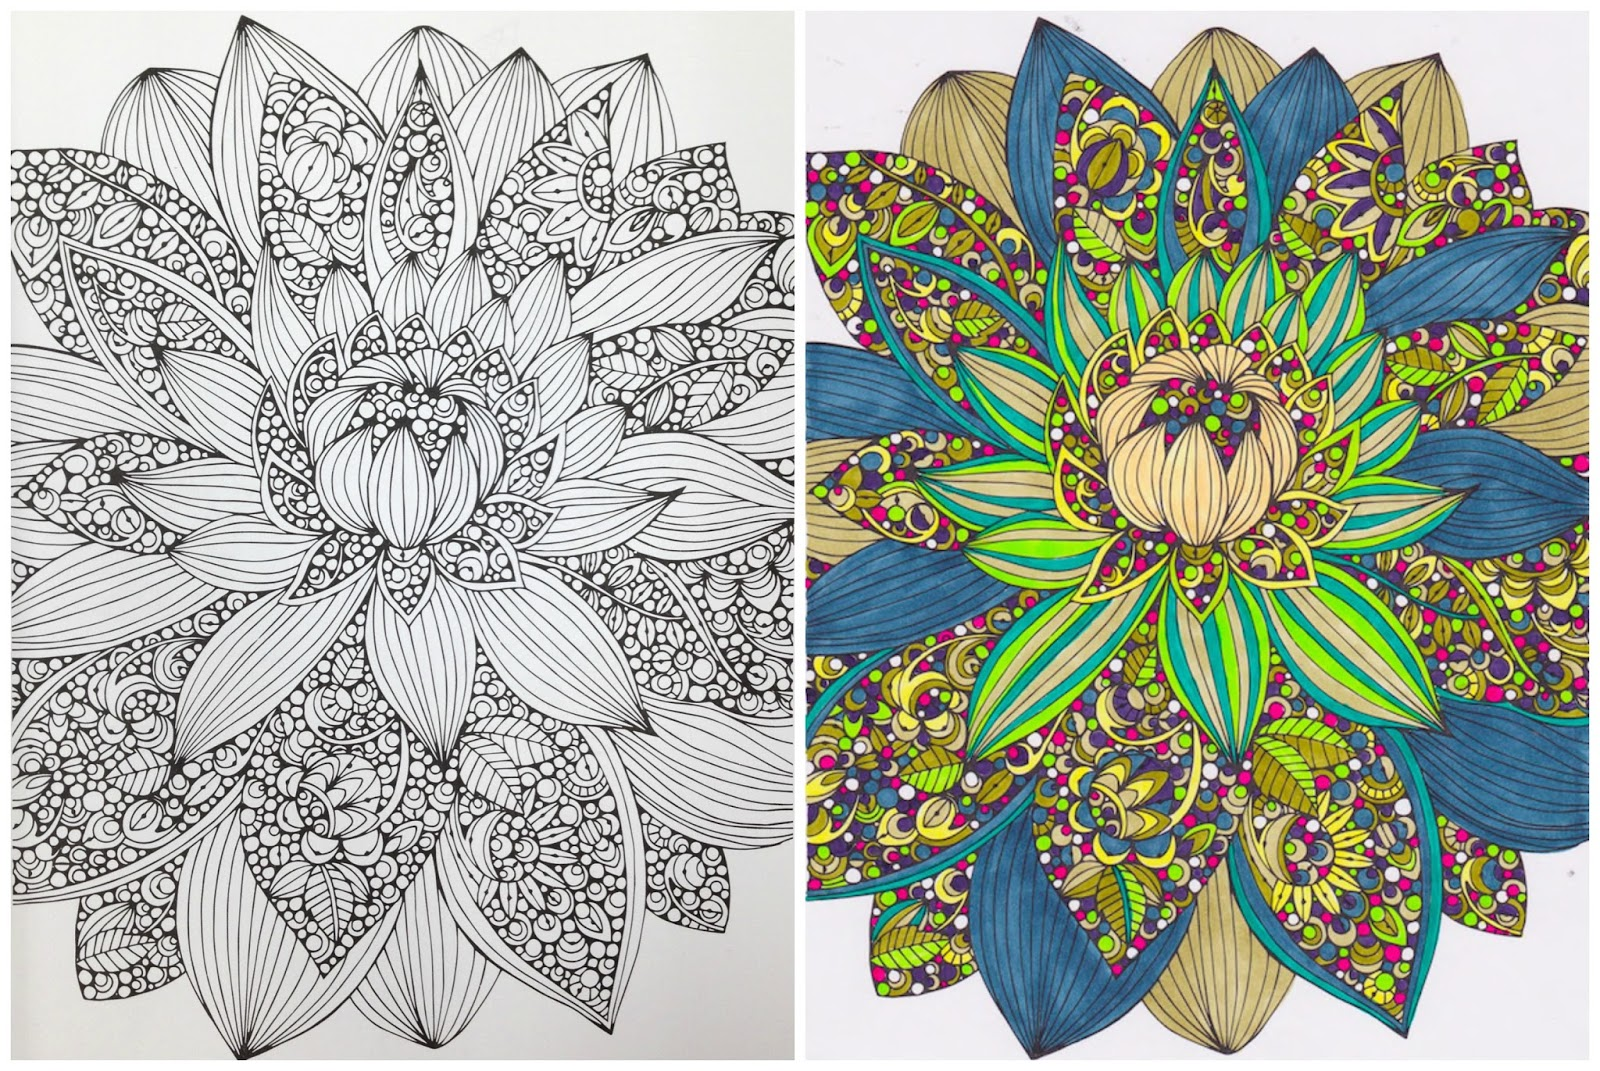 Use your finished coloring page to make greeting cards